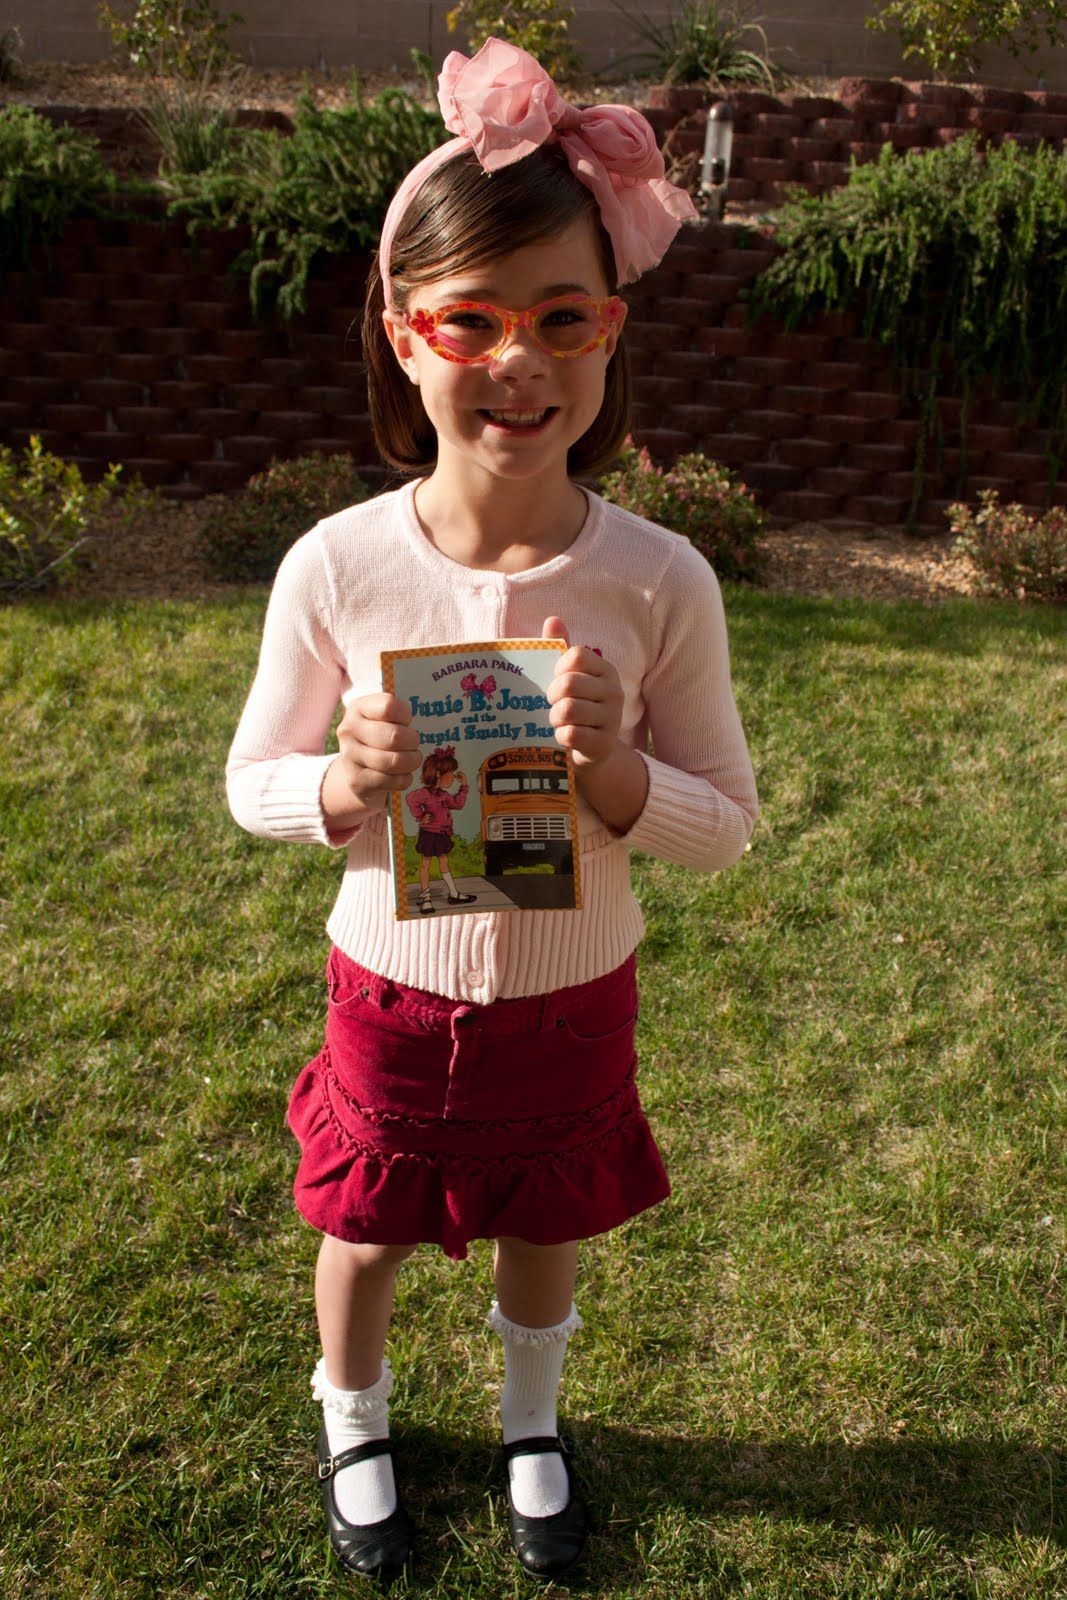 junie b jones Test your junie b jones knowledge pc format: download the file and drop it into your programs folder, then double click on juniesaverexe.